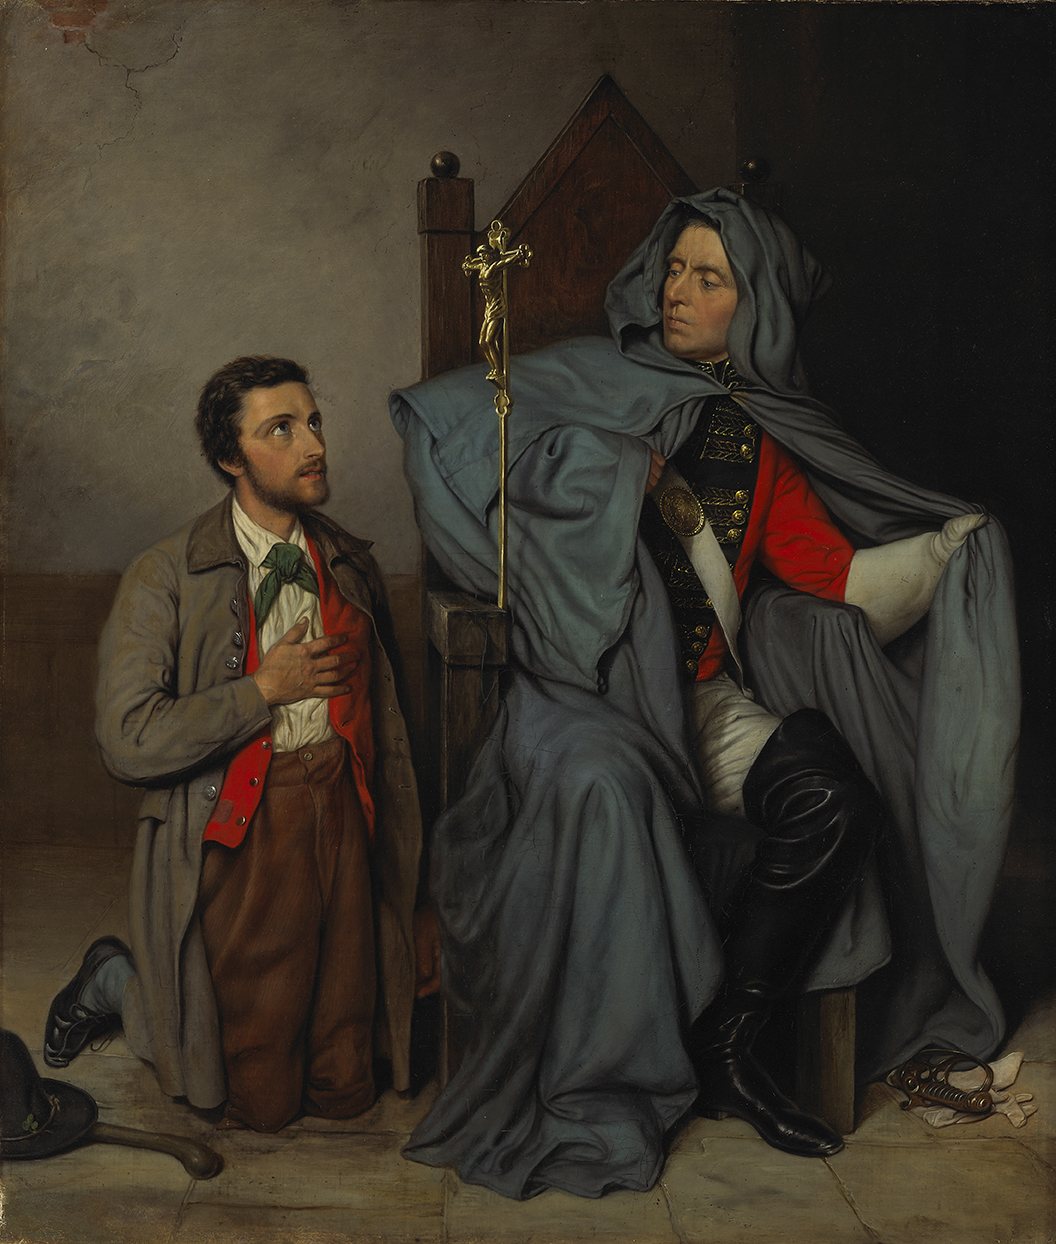 Two men are shown side by side. The one on the left is kneeling, with his right hand on his heart. The one on the right, wearing a blue cloak that hides his military uniform, is seated on a wooden bishop's chair, looking down at the kneeling man.